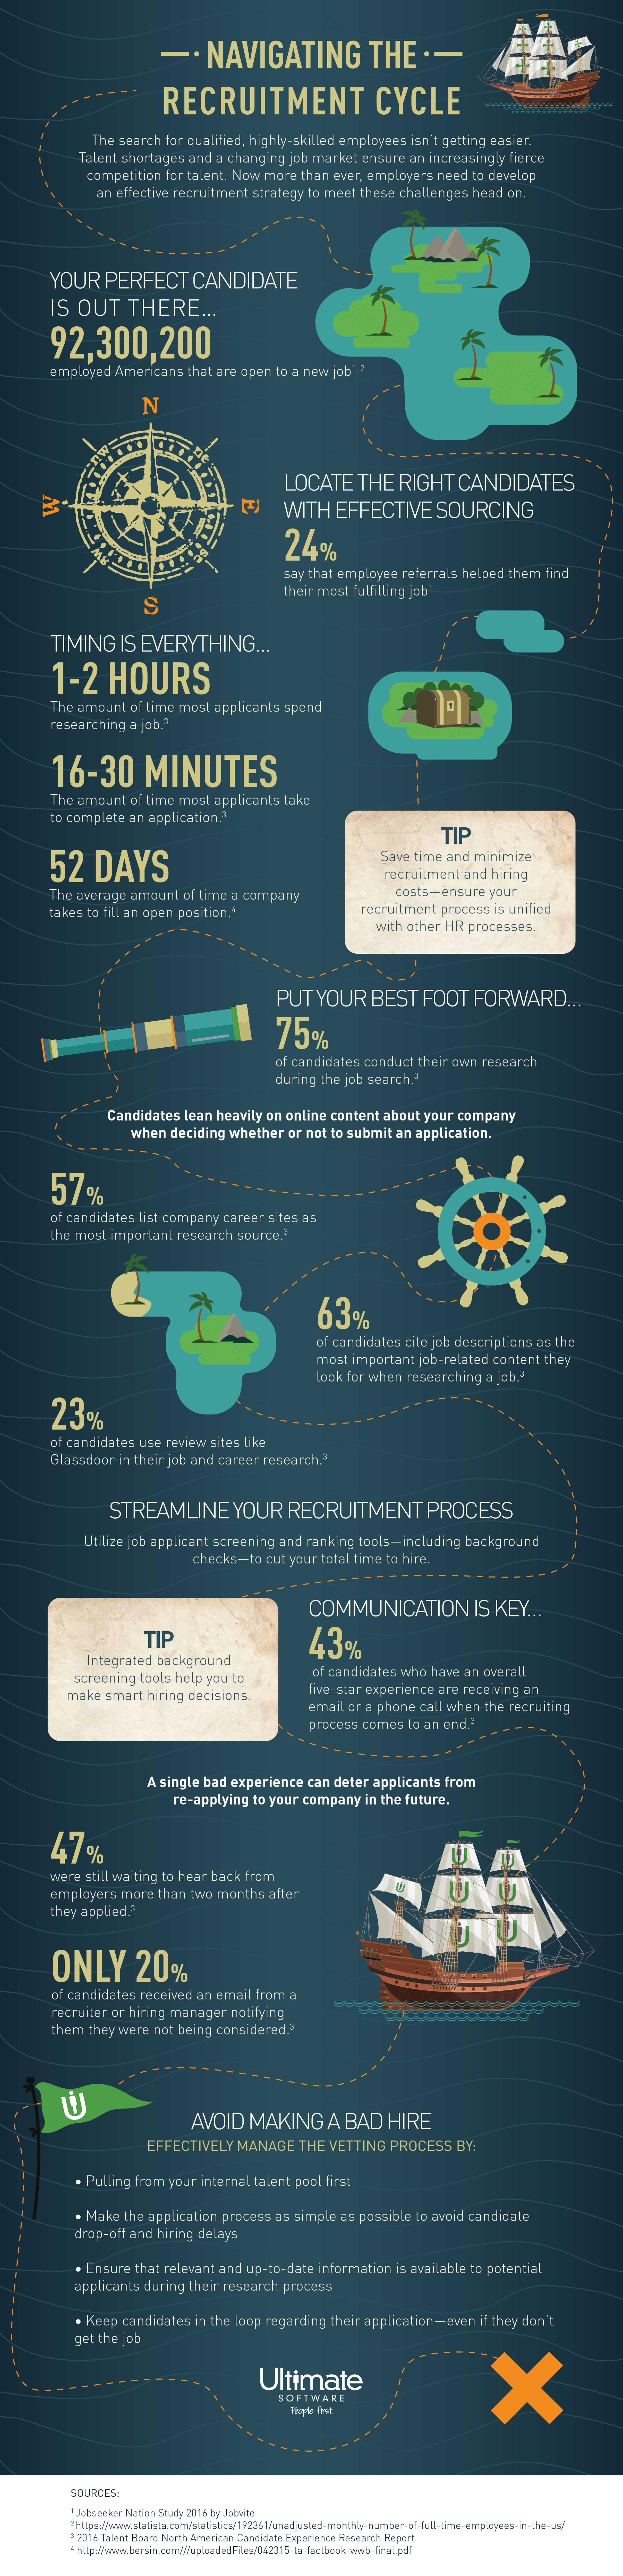 Find out how to effectively navigate the recruitment cycle and make better hiring decisions with our newest infographic.